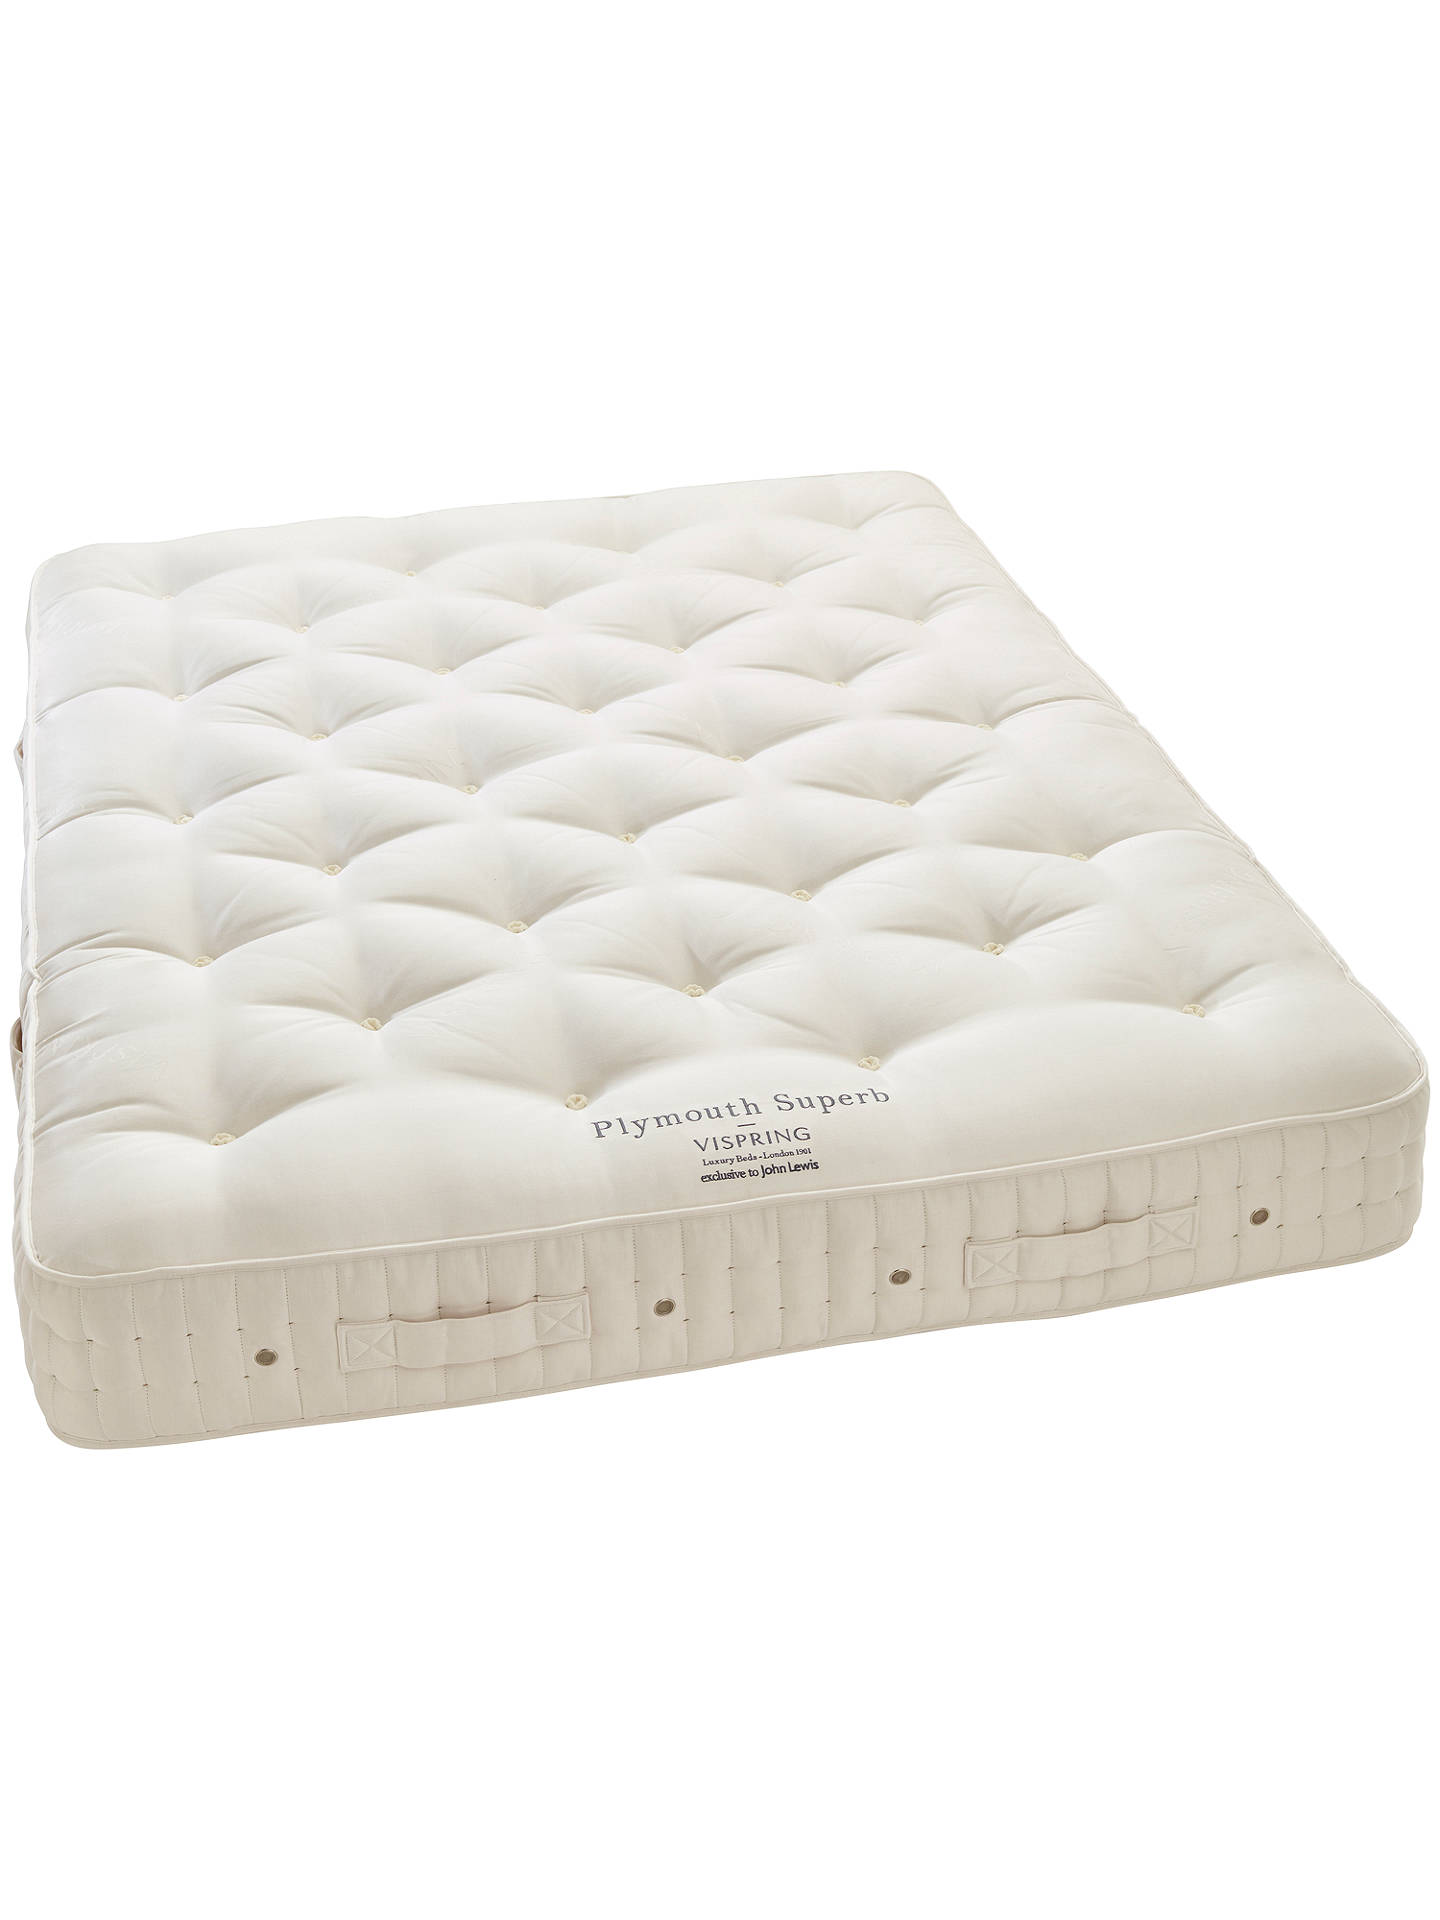 Vispring Plymouth Superb Mattress Medium King Size Online At Johnlewis Com